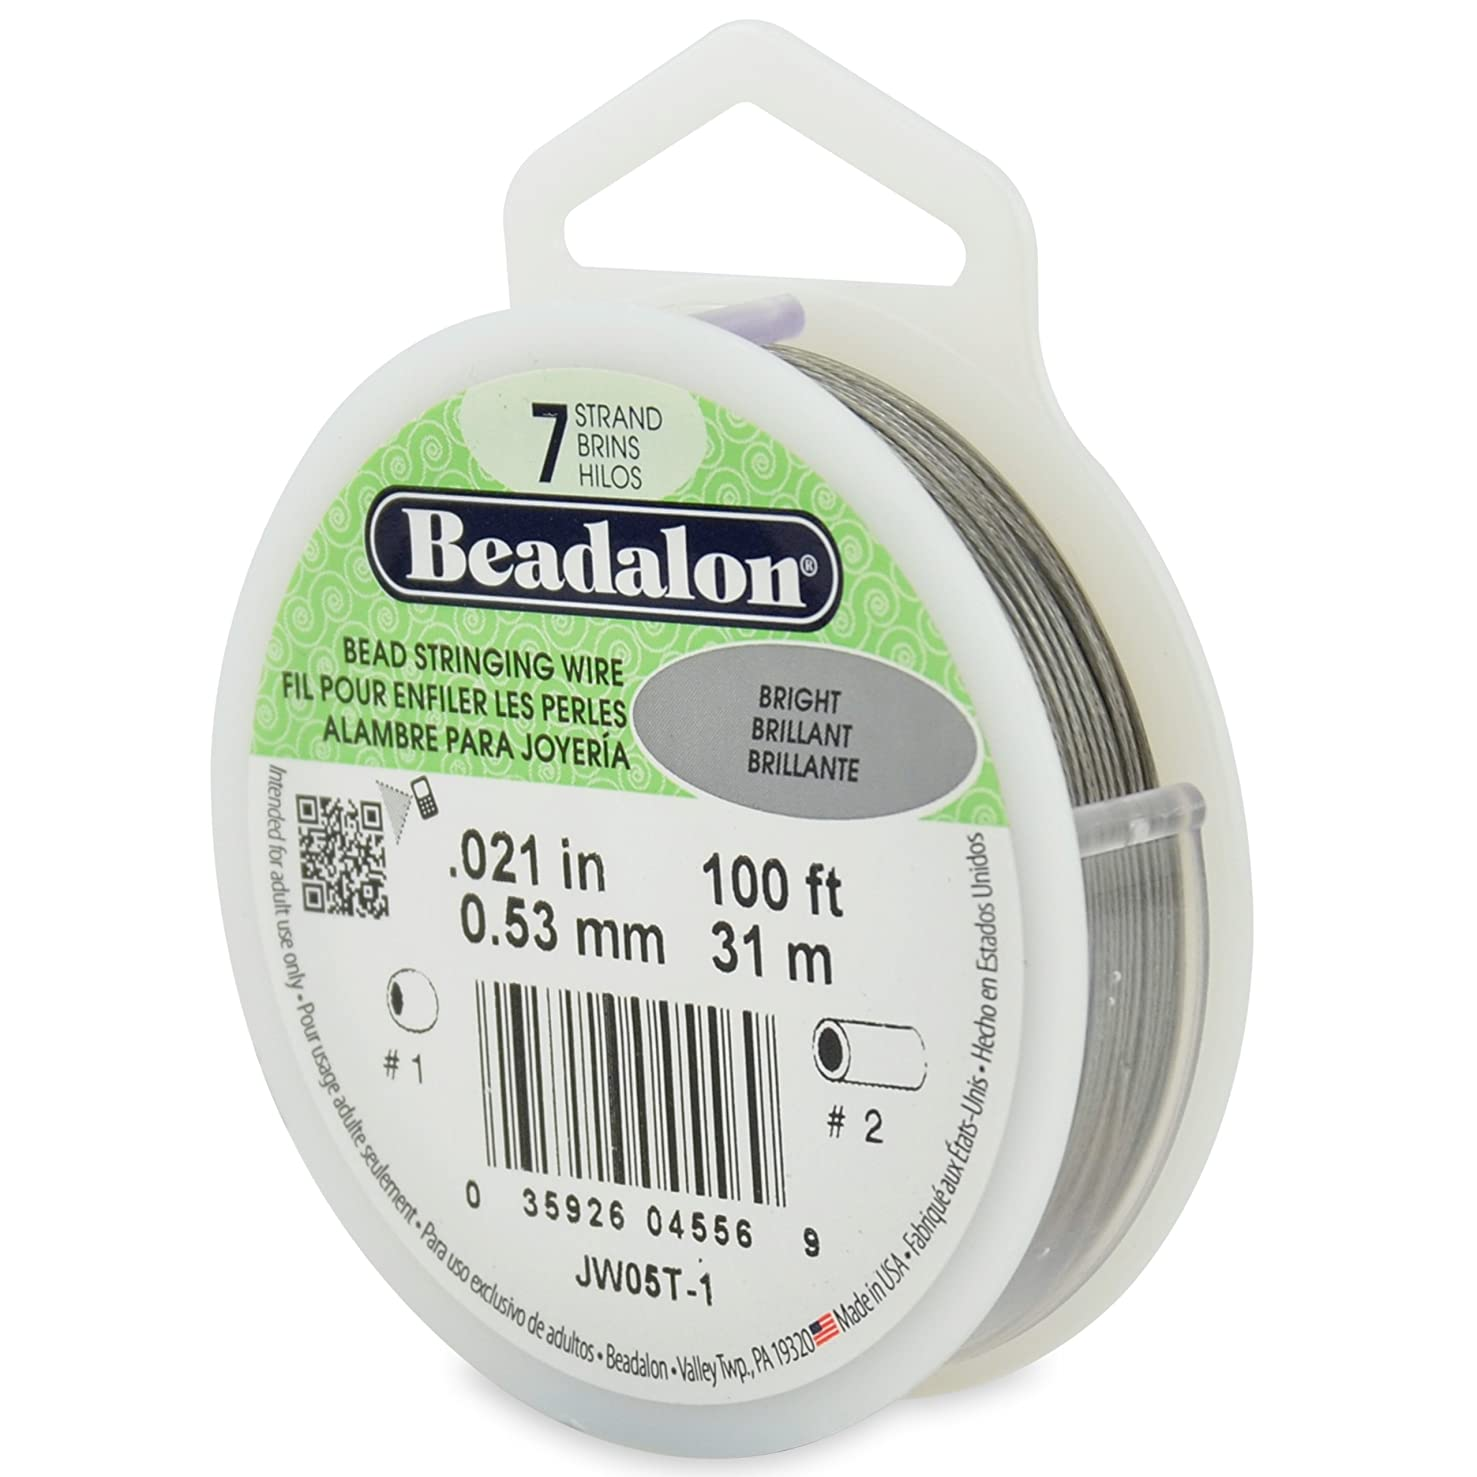 Beadalon 100-Feet 7-Strand Stainless Steel Bead Stringing Wire, 0.021-Inch, Bright